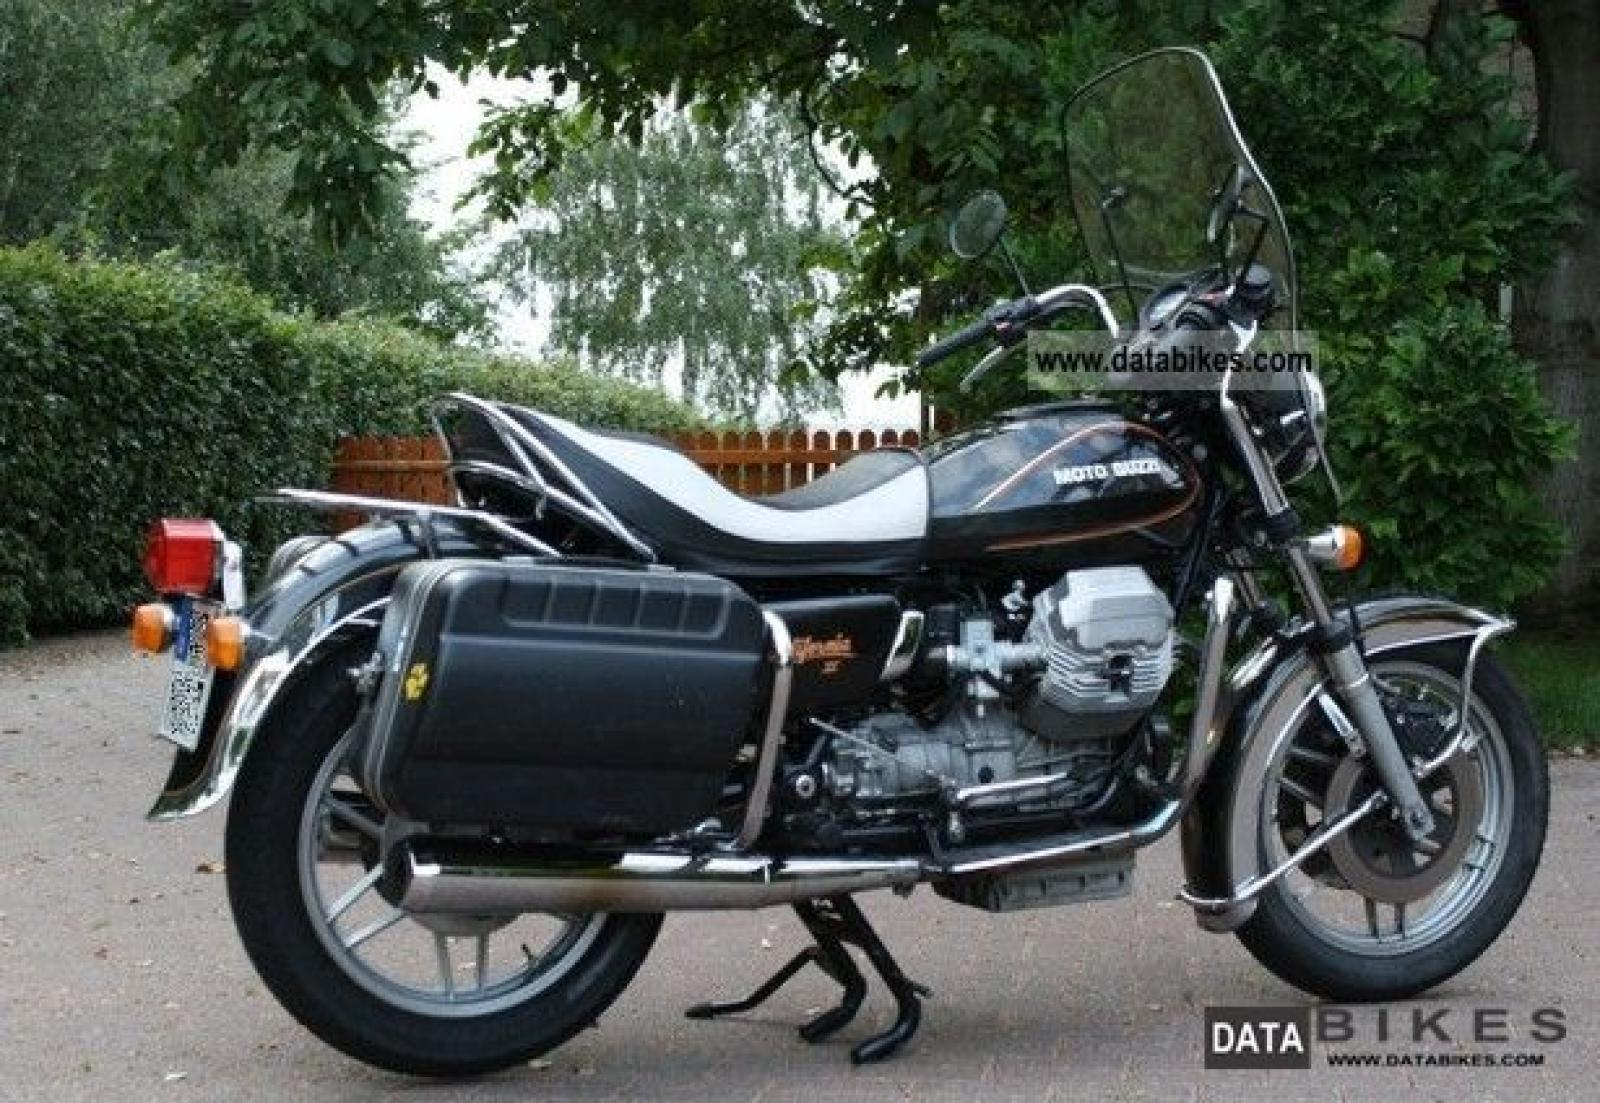 Moto Guzzi California III C 1991 images #107921